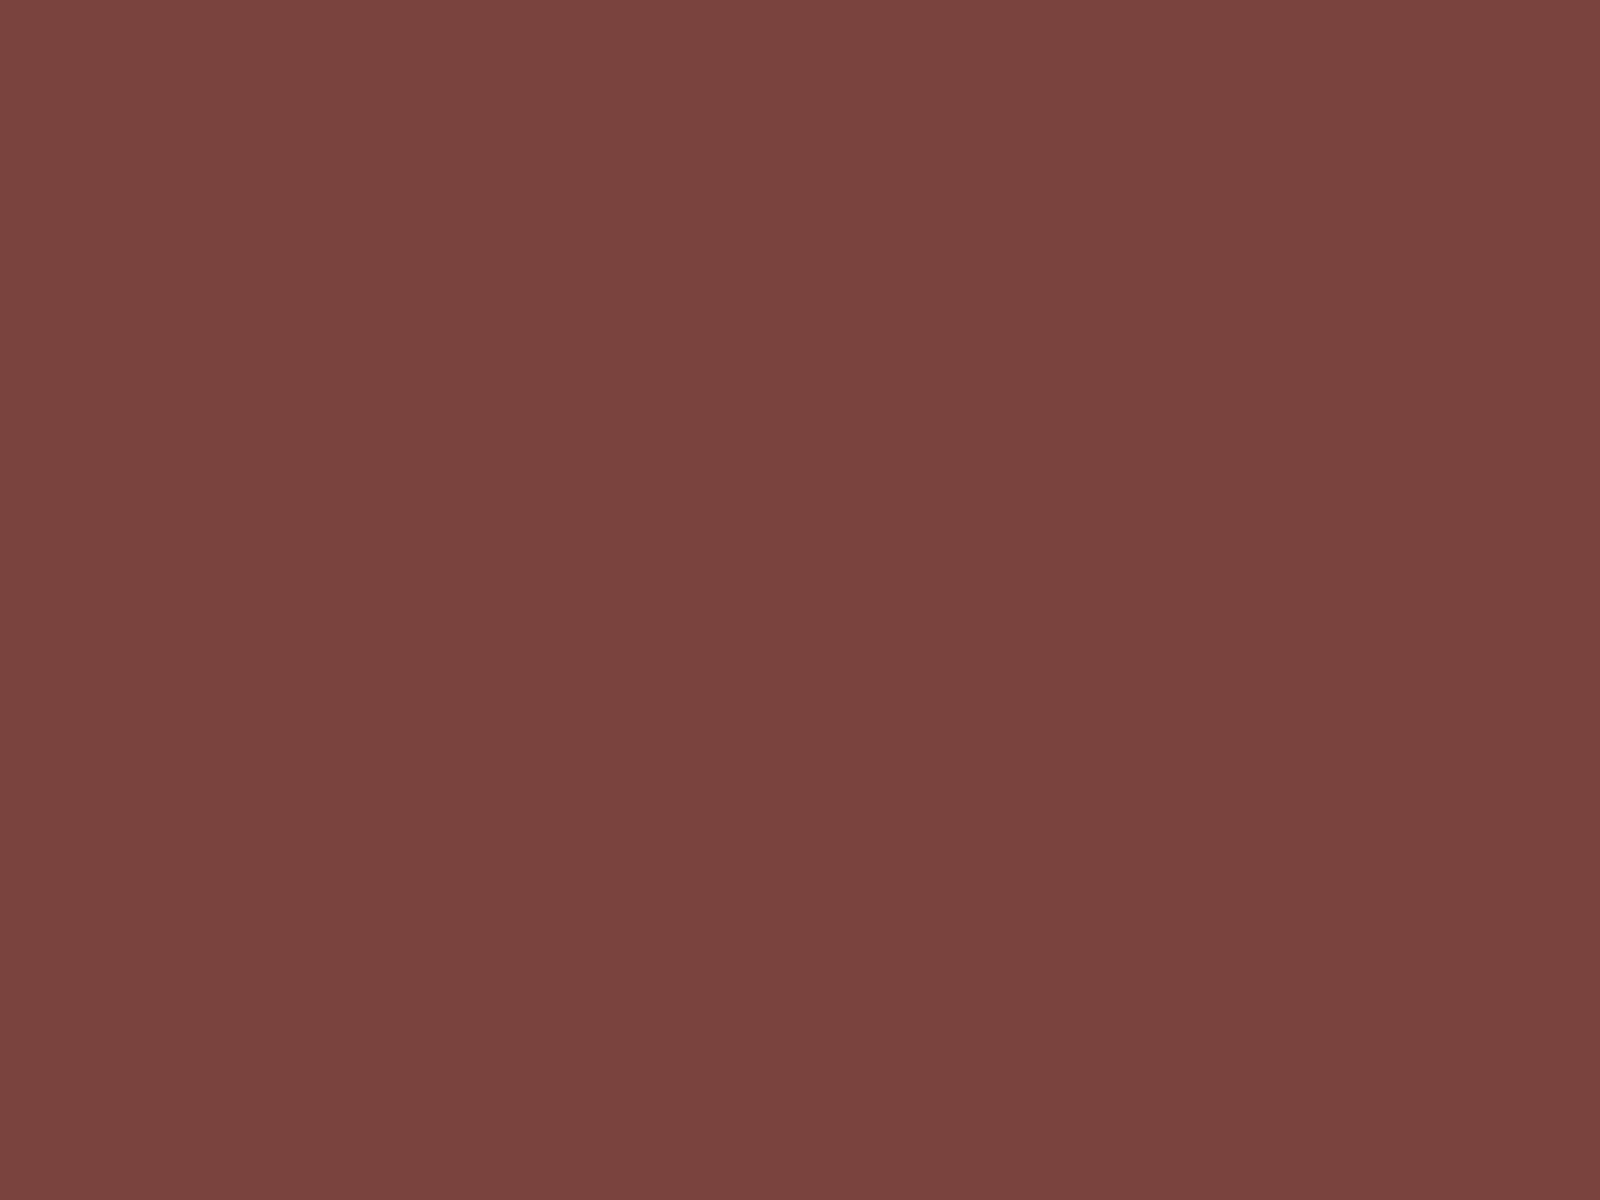 1600x1200 Bole Solid Color Background